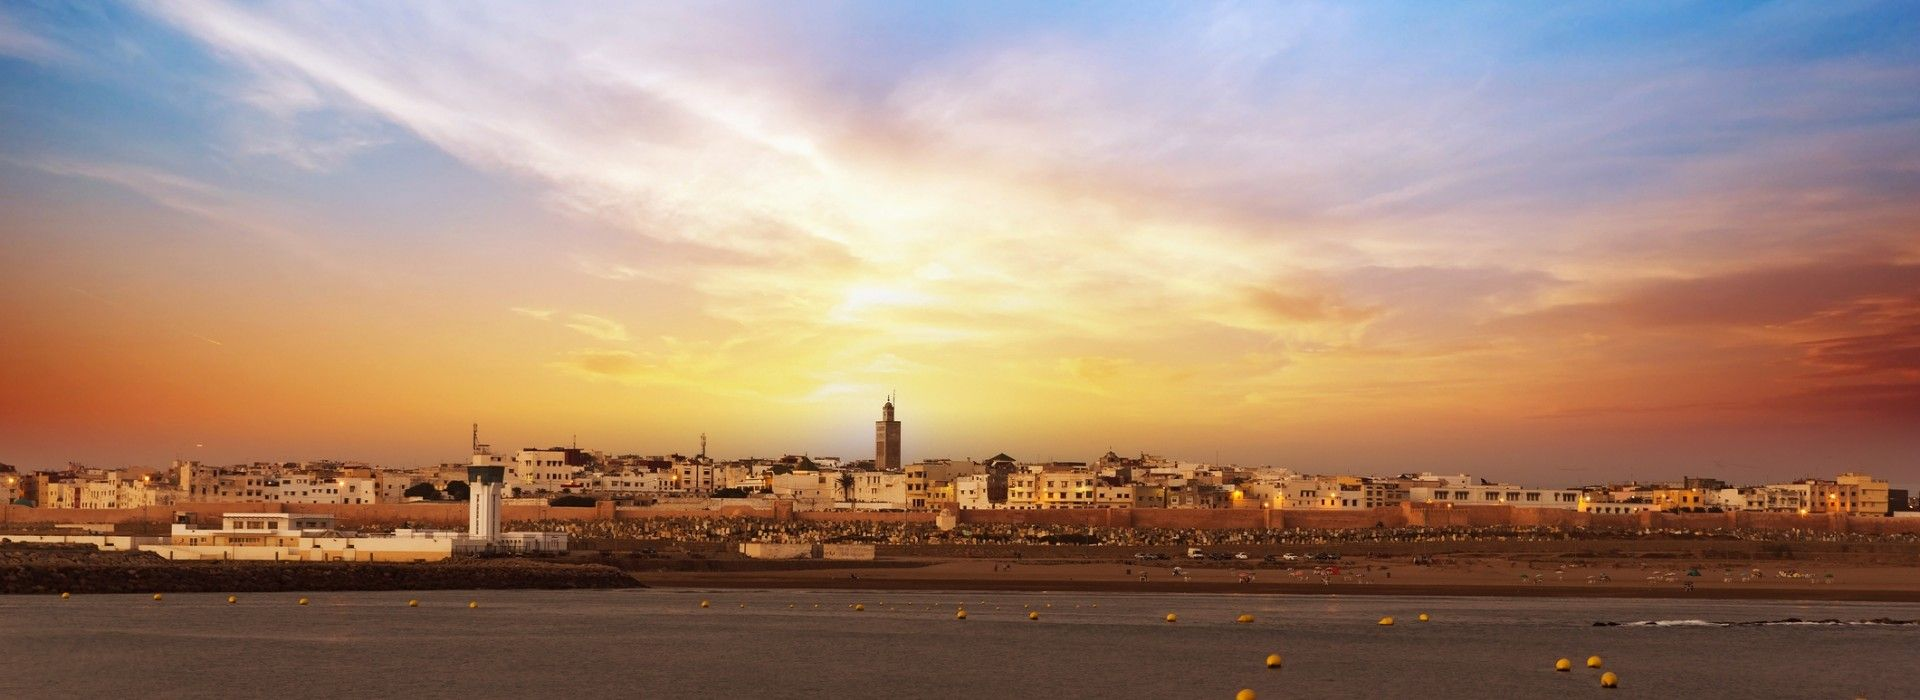 Sightseeing, attractions, culture and history Tours in Marrakesh